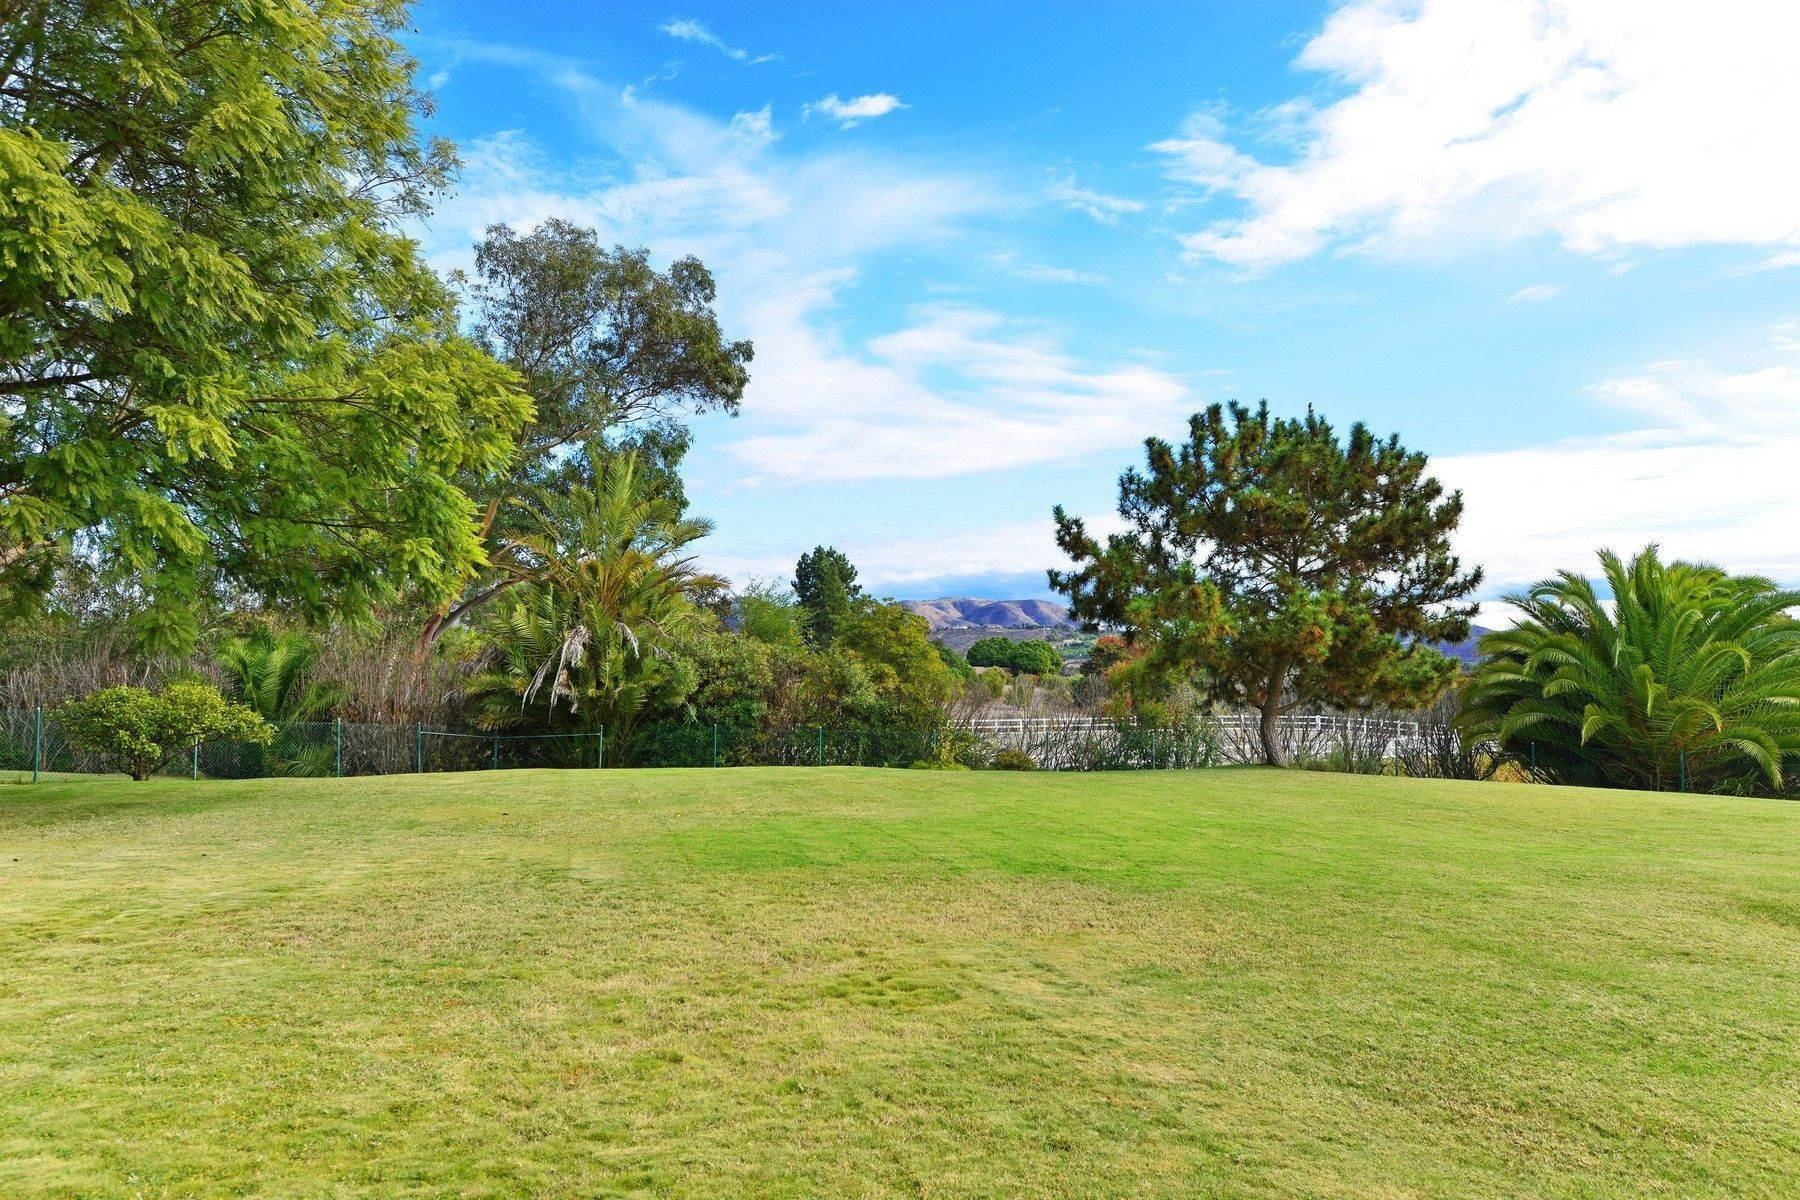 Land for Sale at 6710 El Montevideo Rancho Santa Fe, California 92067 United States